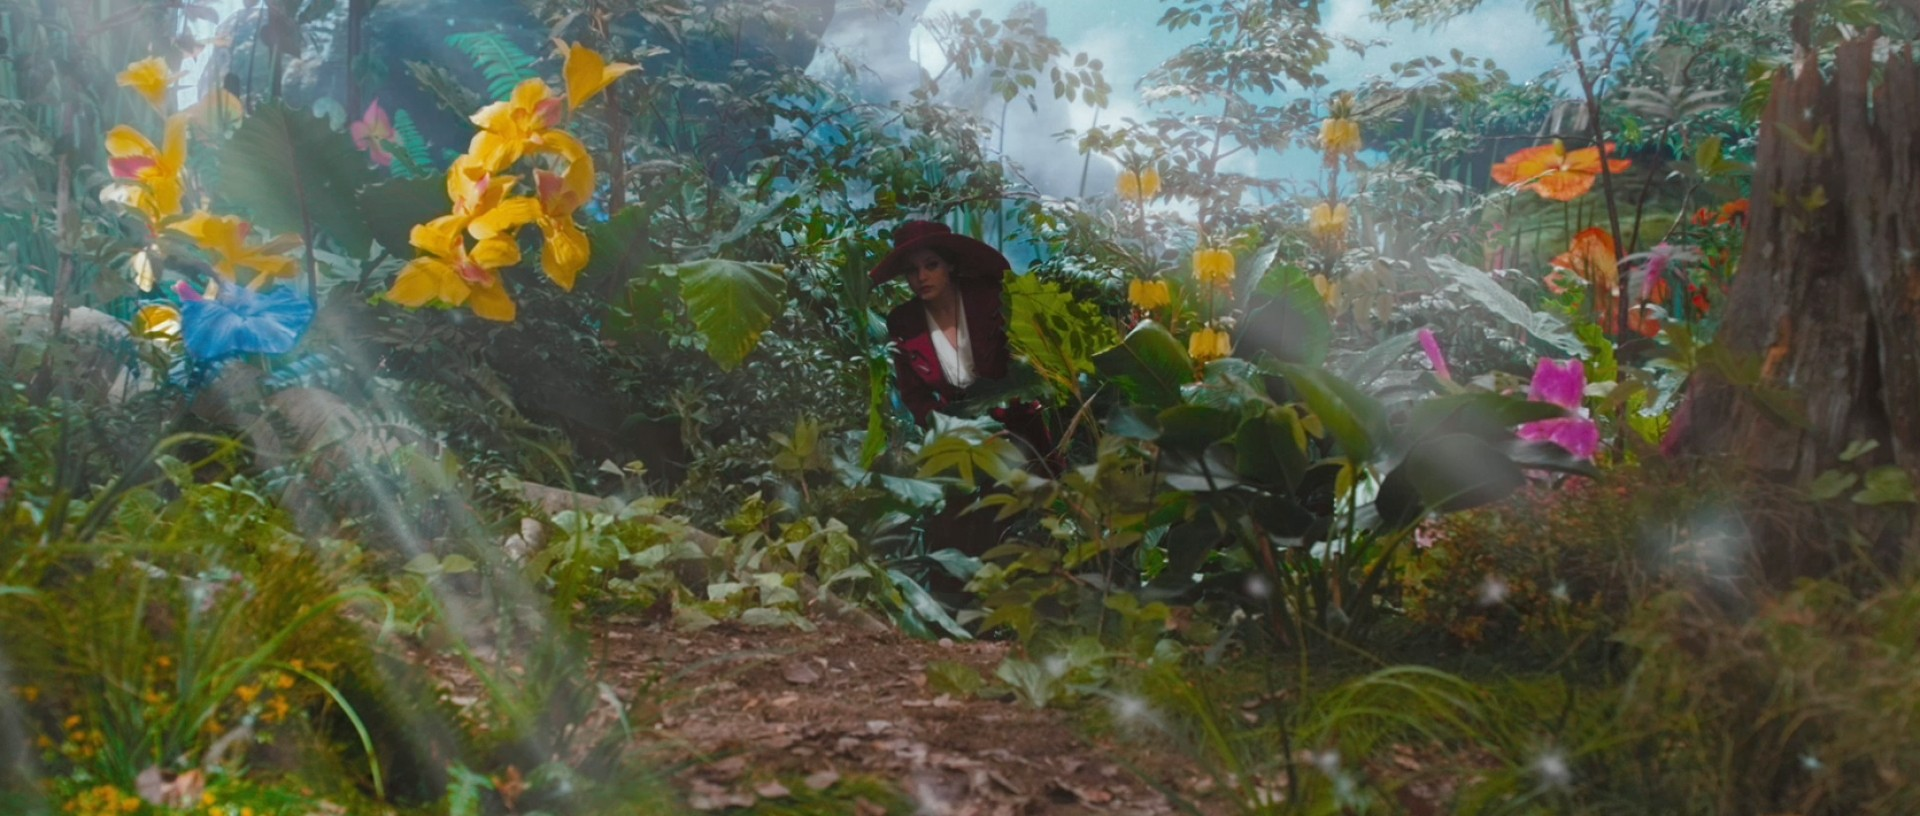 Oz The Great And Powerful 2013 Disney Photo 32204292